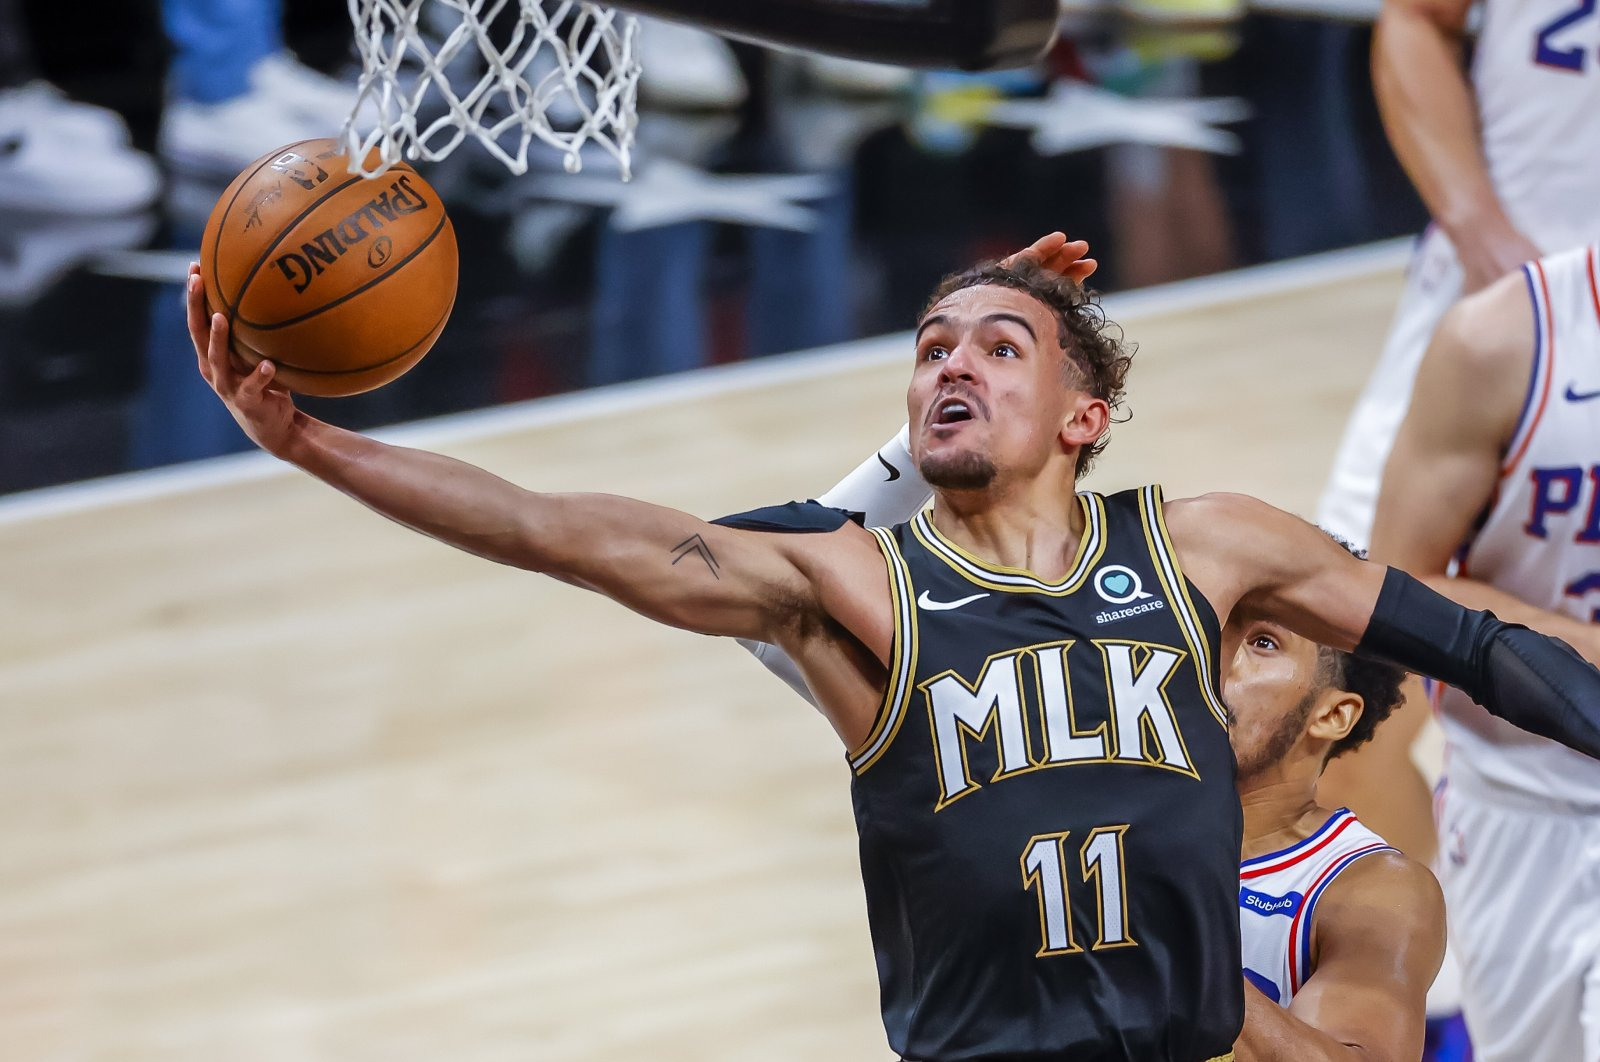 Atlanta Hawks guard Trae Young (L) in action against Philadelphia 76ers forward Gary Clark (R) during Game 4 of the NBA Eastern Conference semifinal playoff series at State Farm Arena, Atlanta, Georgia, U.S., June 14, 2021. (EPA Photo)